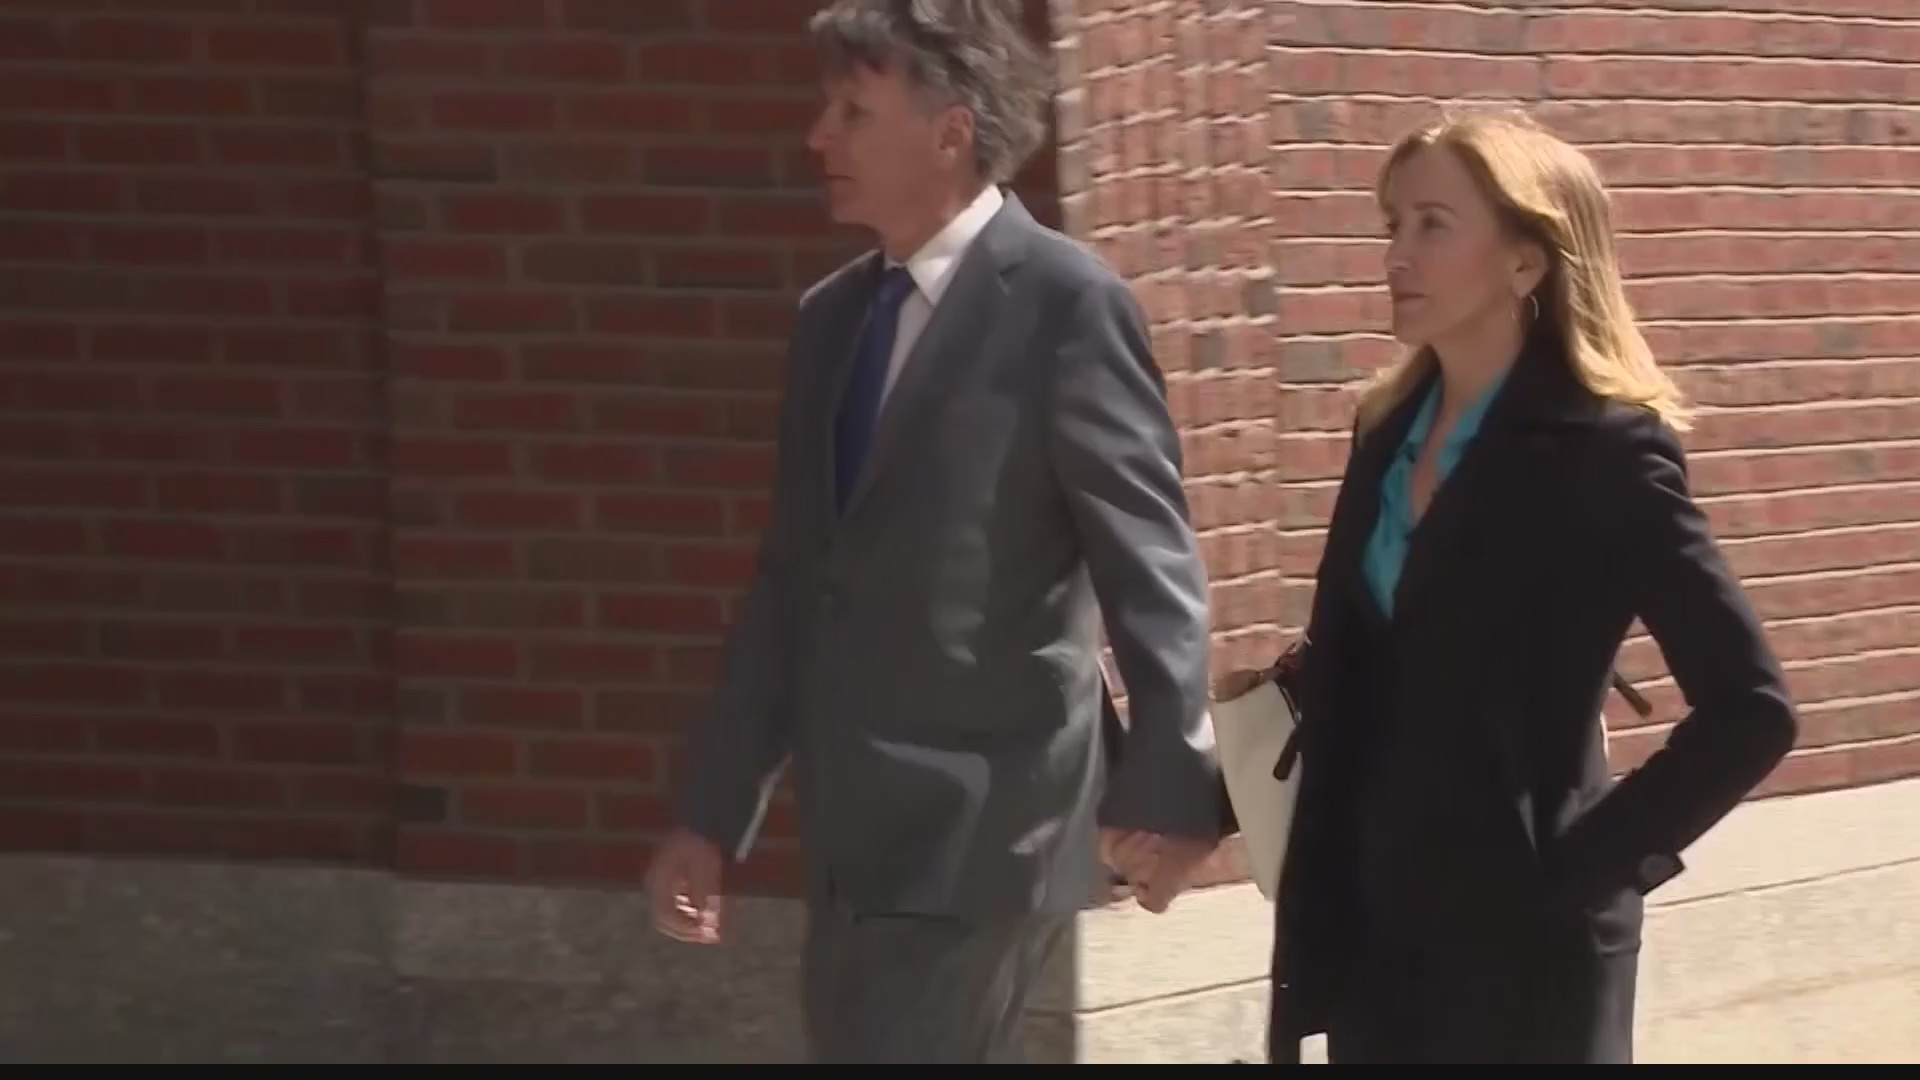 Huffman expected to plead guilty